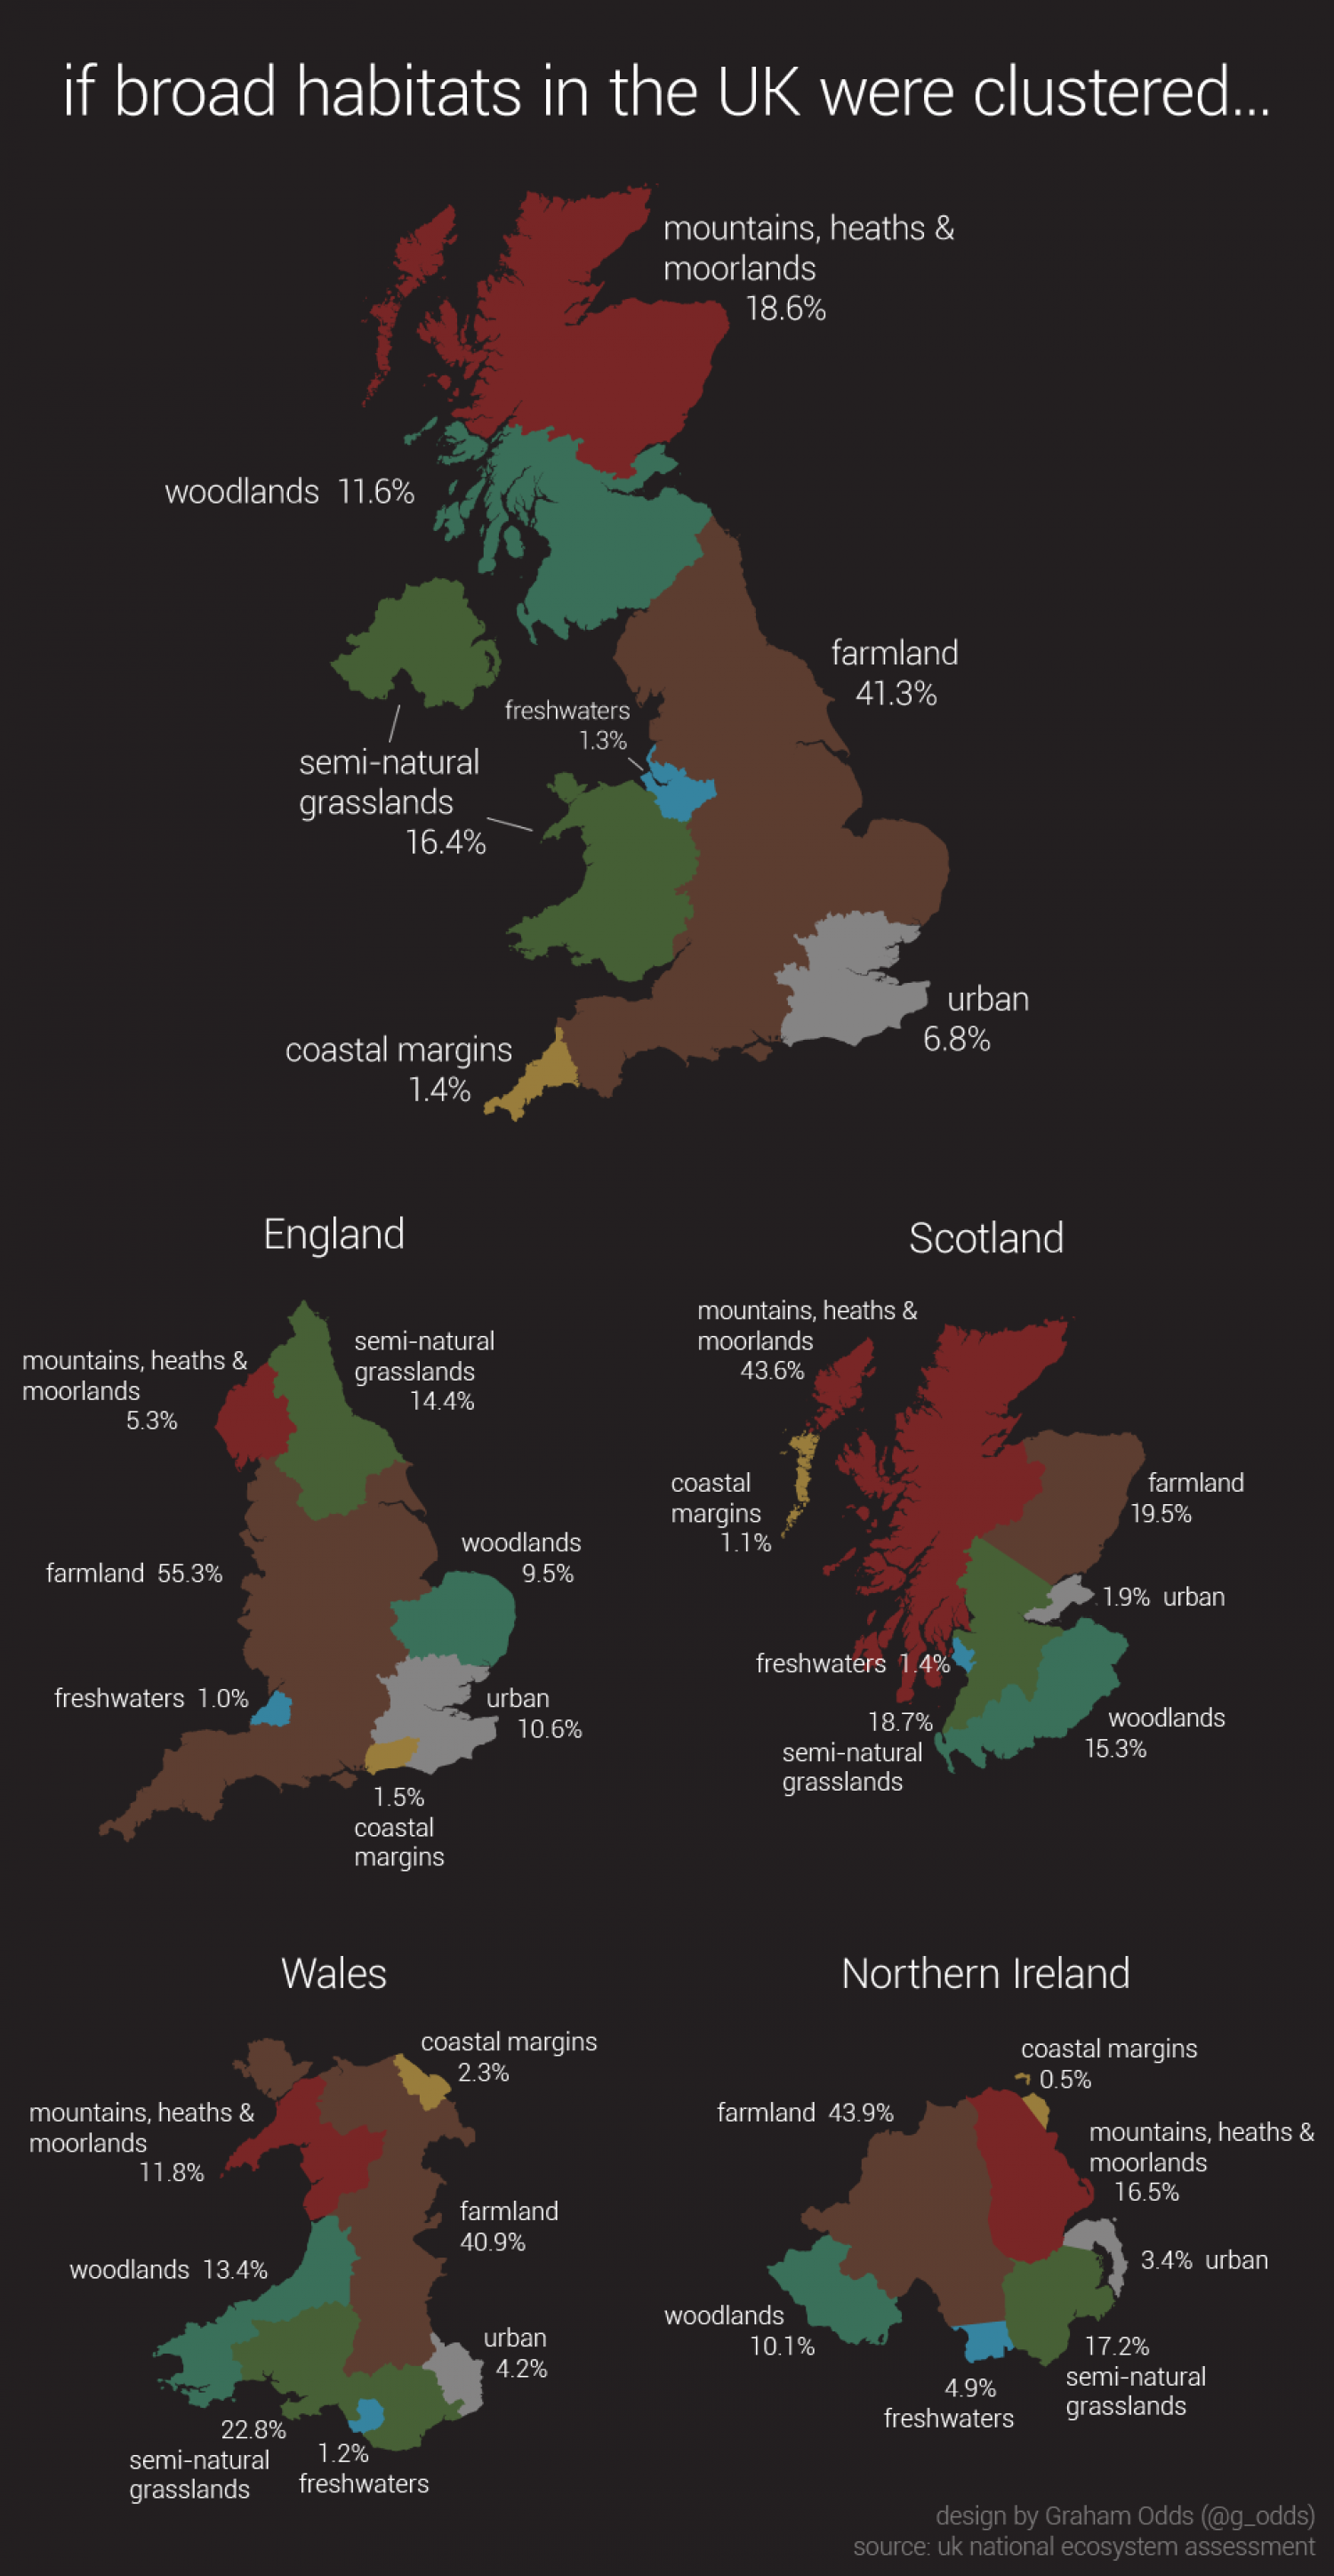 If broad habitats in the UK were clustered... Infographic